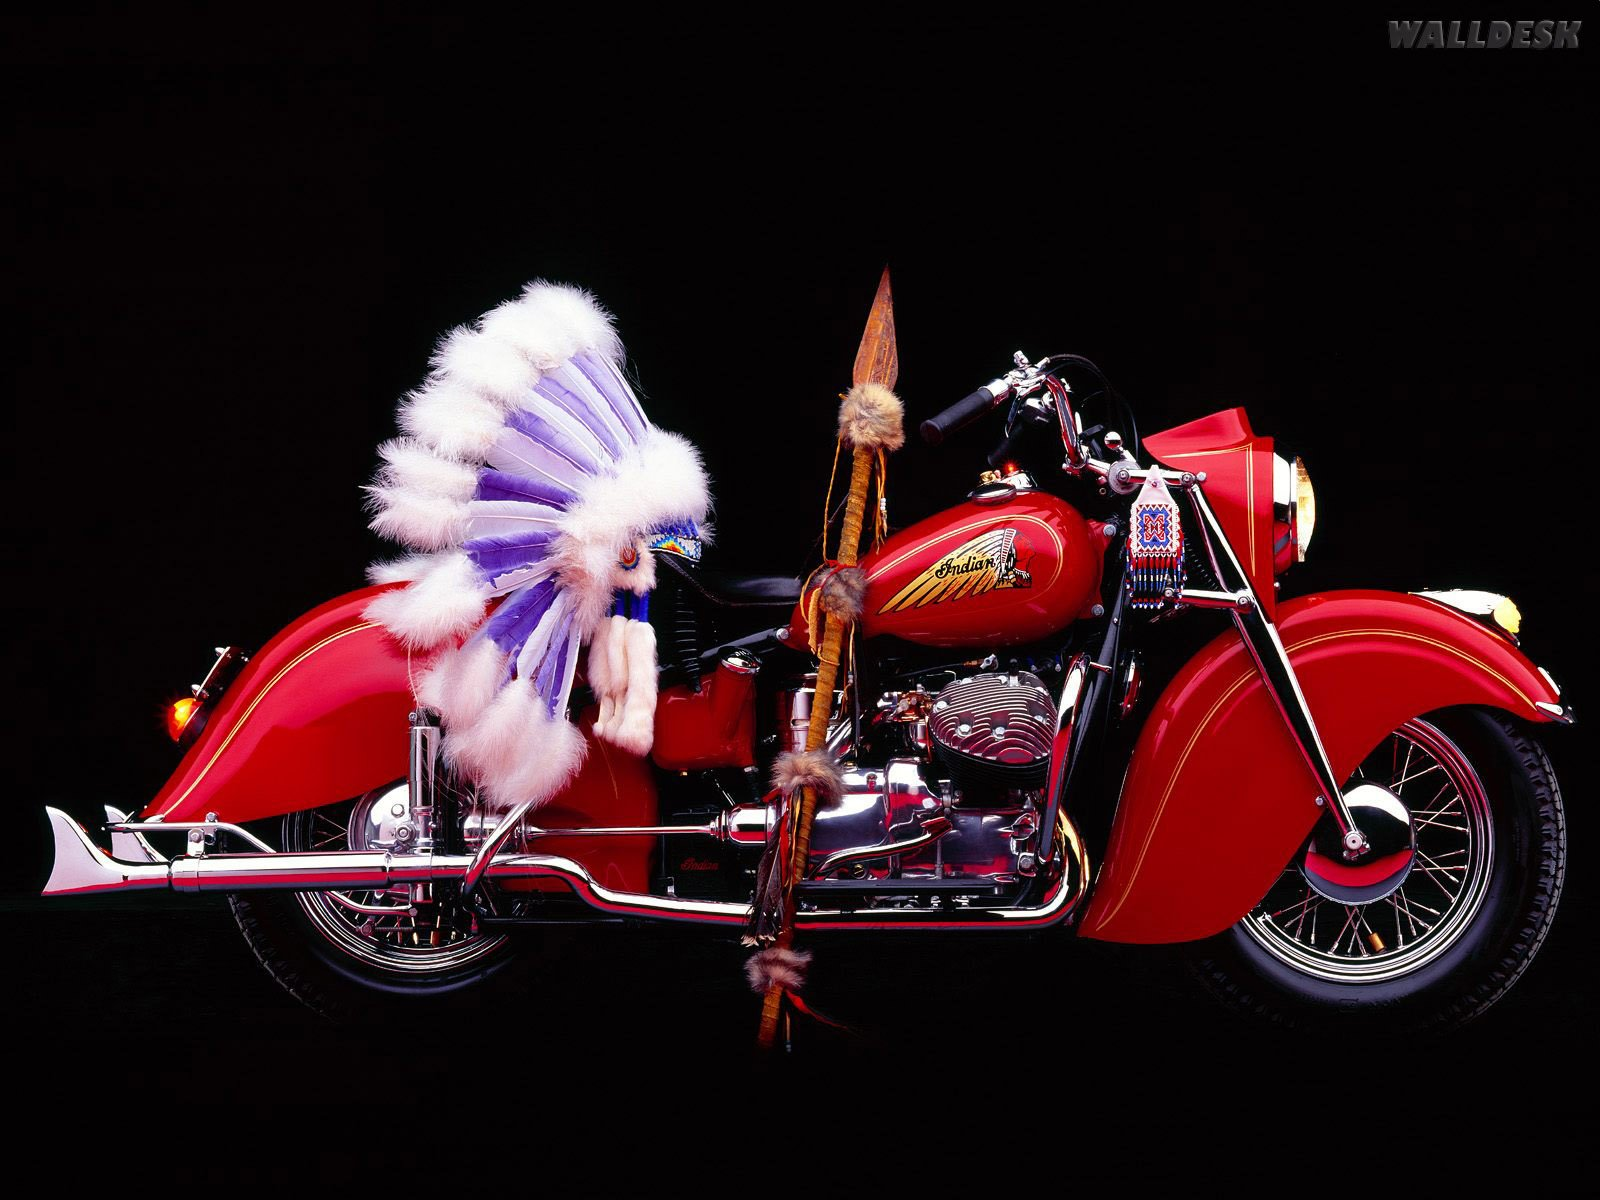 44 Indian Motorcycle Desktop Wallpaper On Wallpapersafari